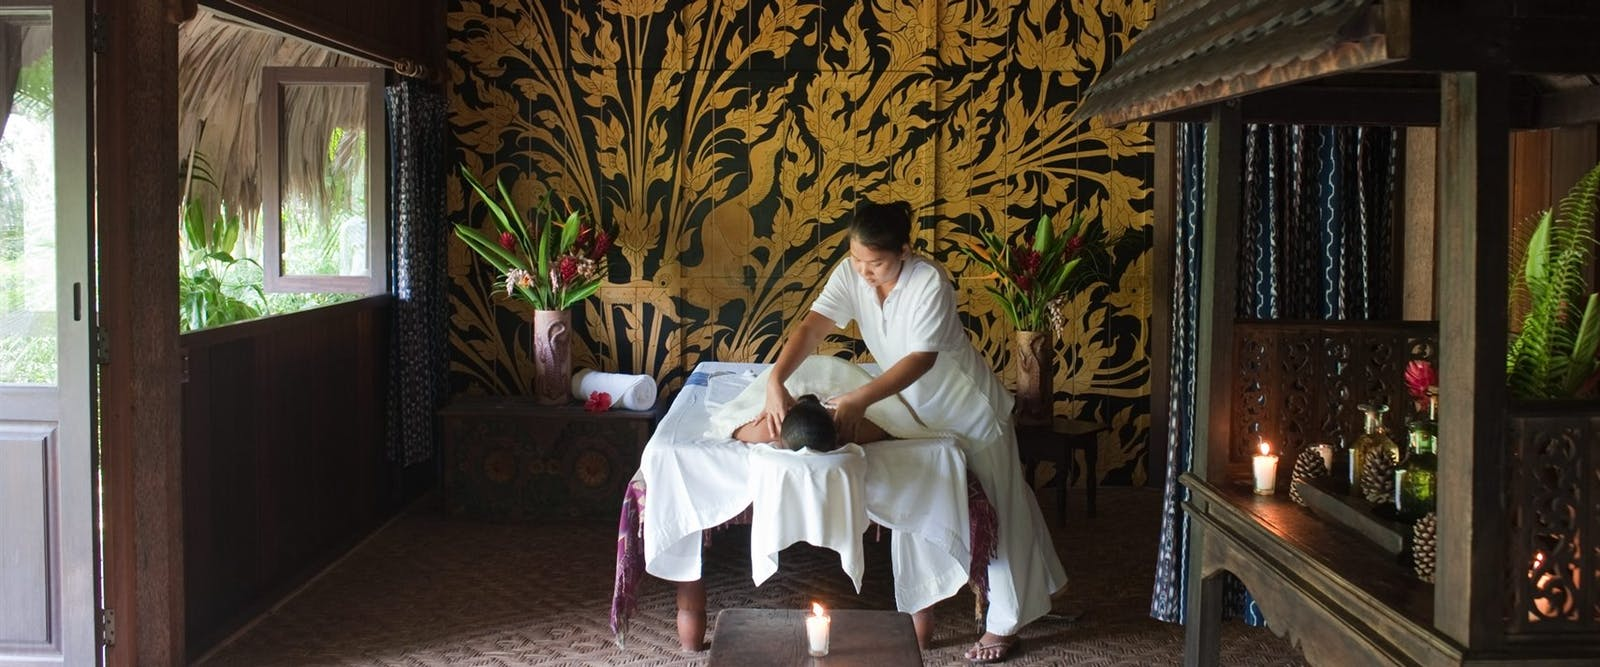 spa treatment, Blancaneaux Lodge, Belize